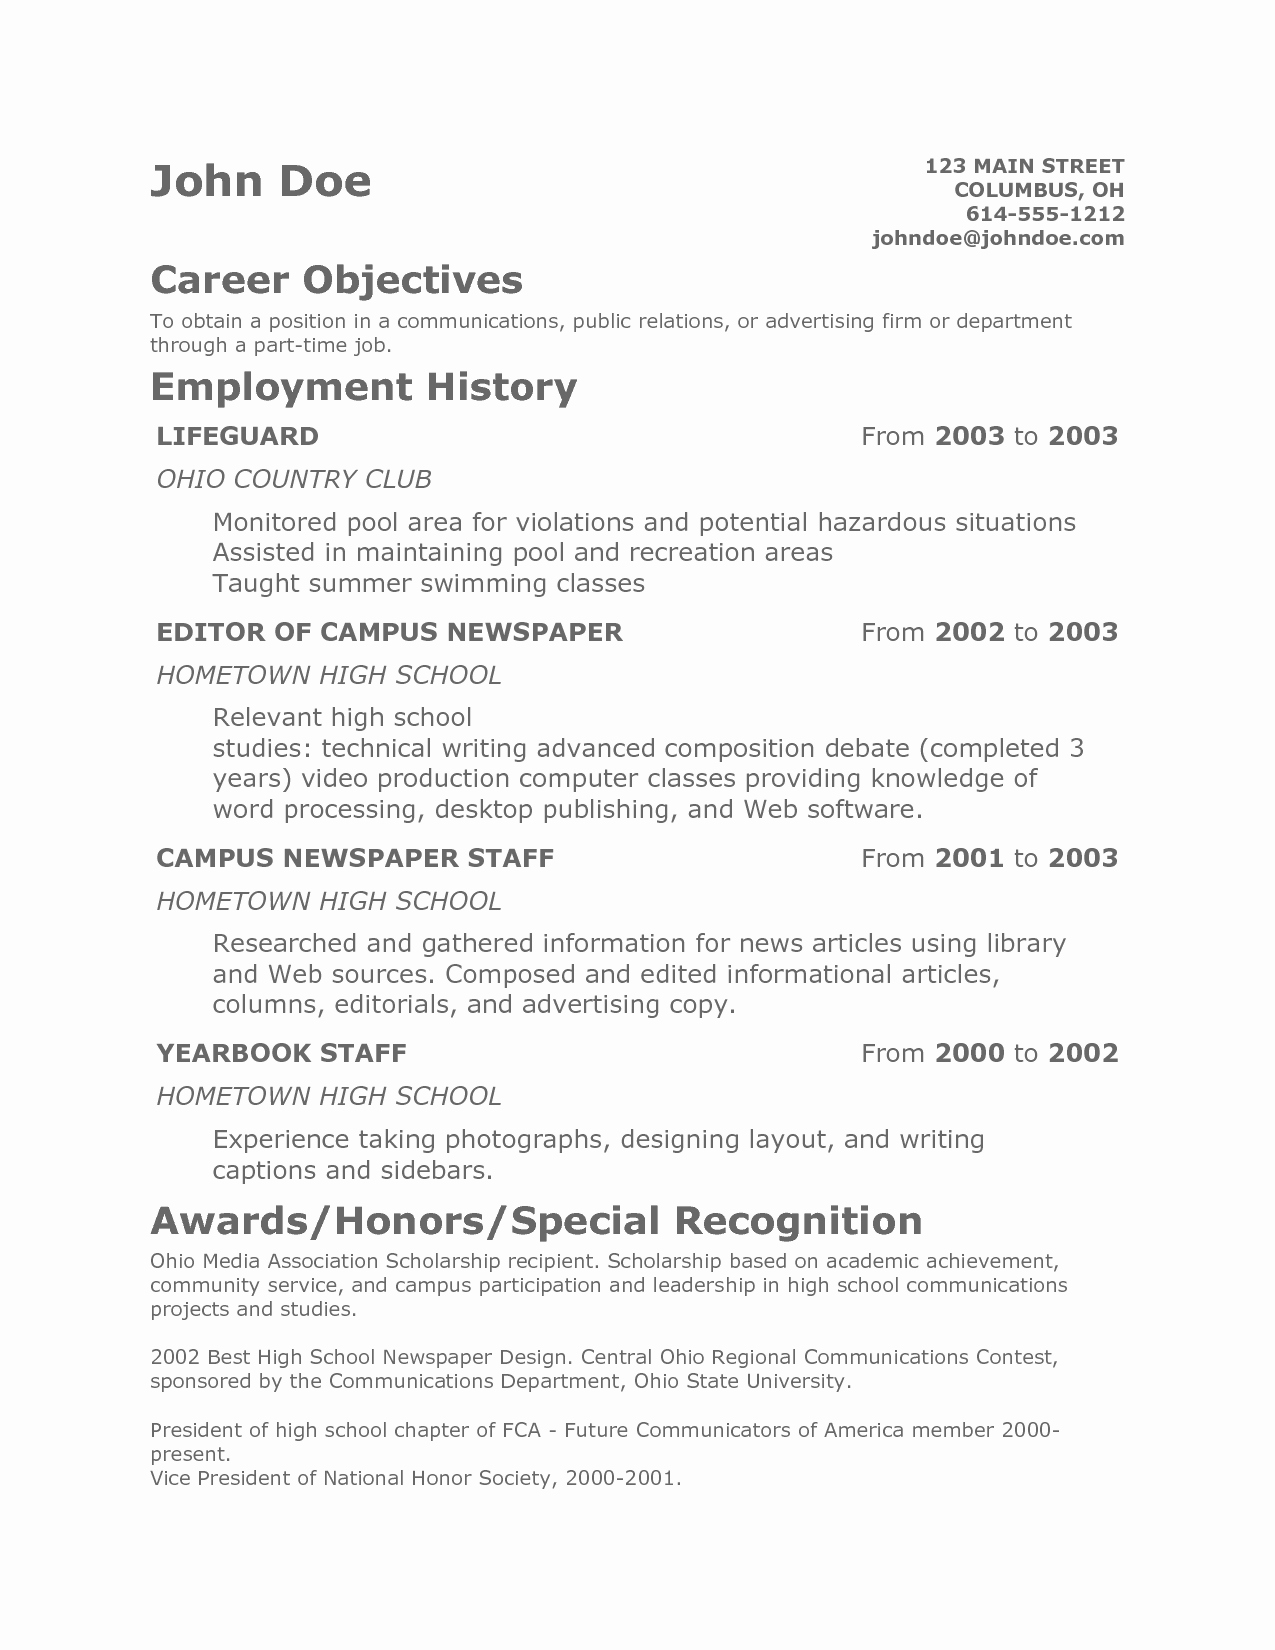 Resume Templates for Teens Unique Teenage Resume Template